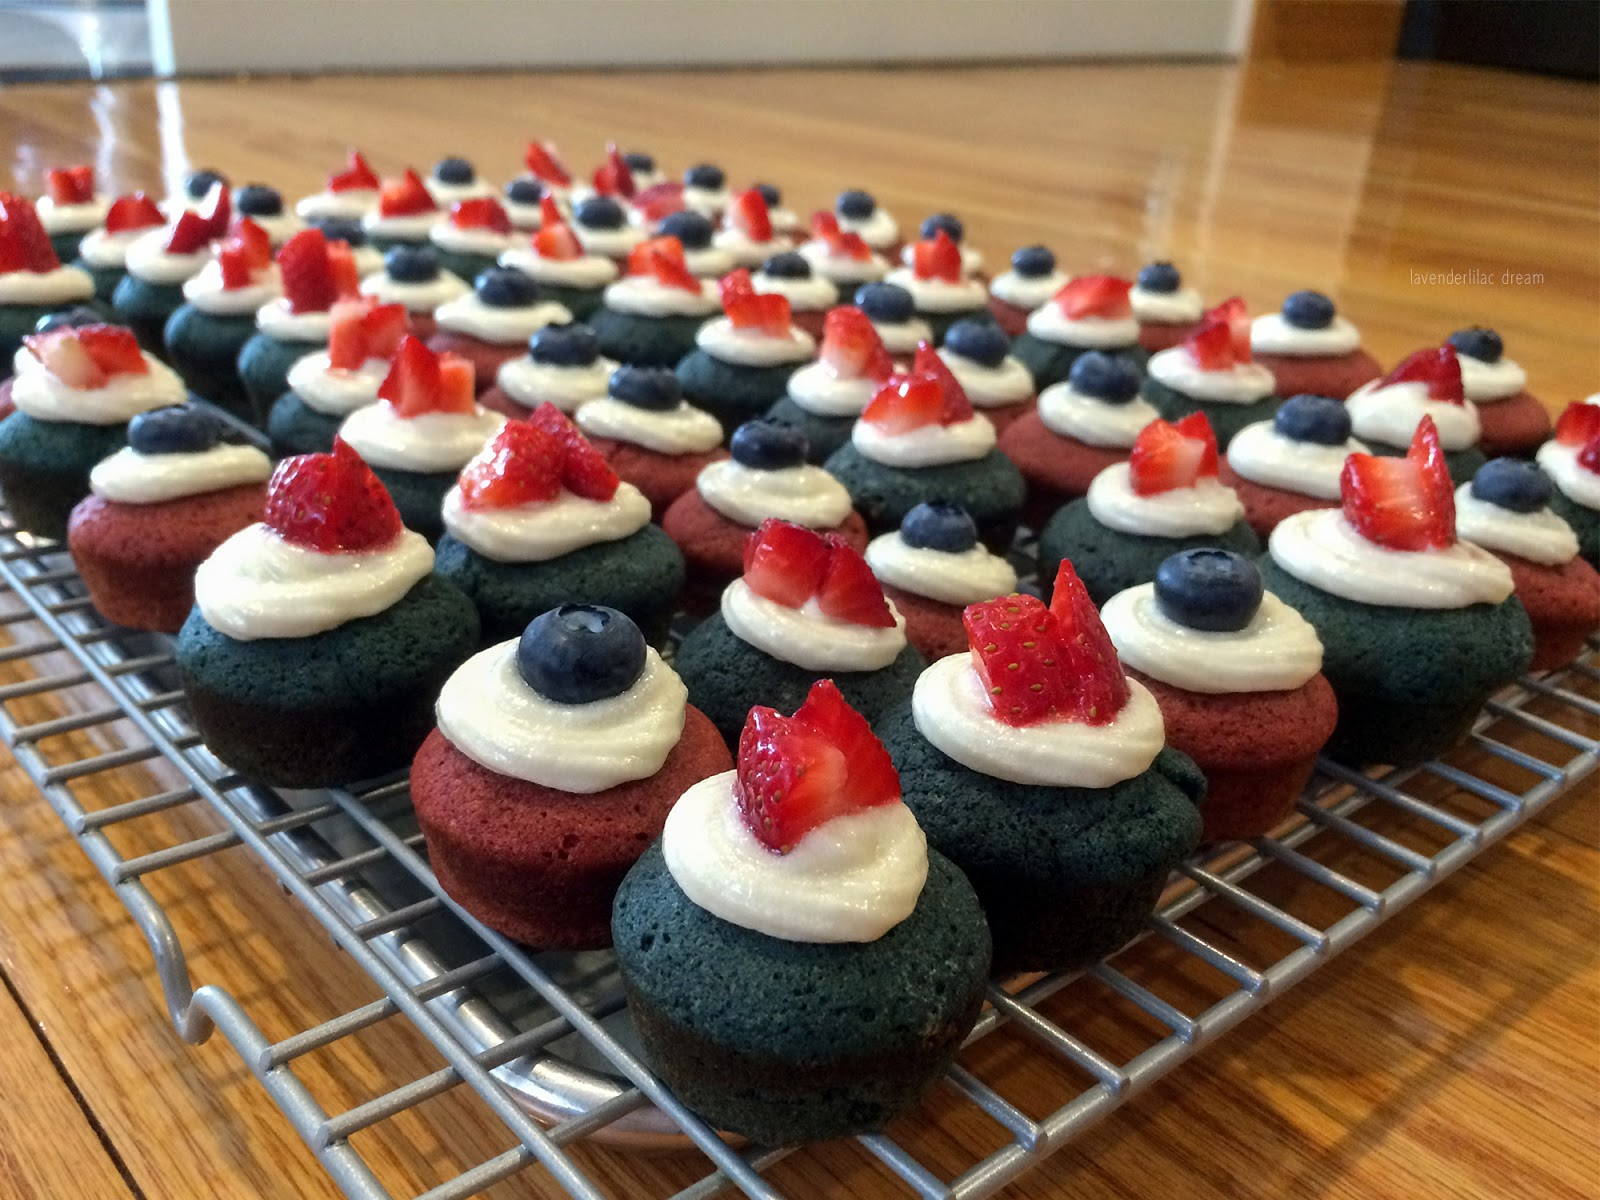 Red Velvet Cupcakes, Blue Velvet Cupcakes, July 4th cupcakes, mini cupcakes, cream cheese frosting, holiday baking